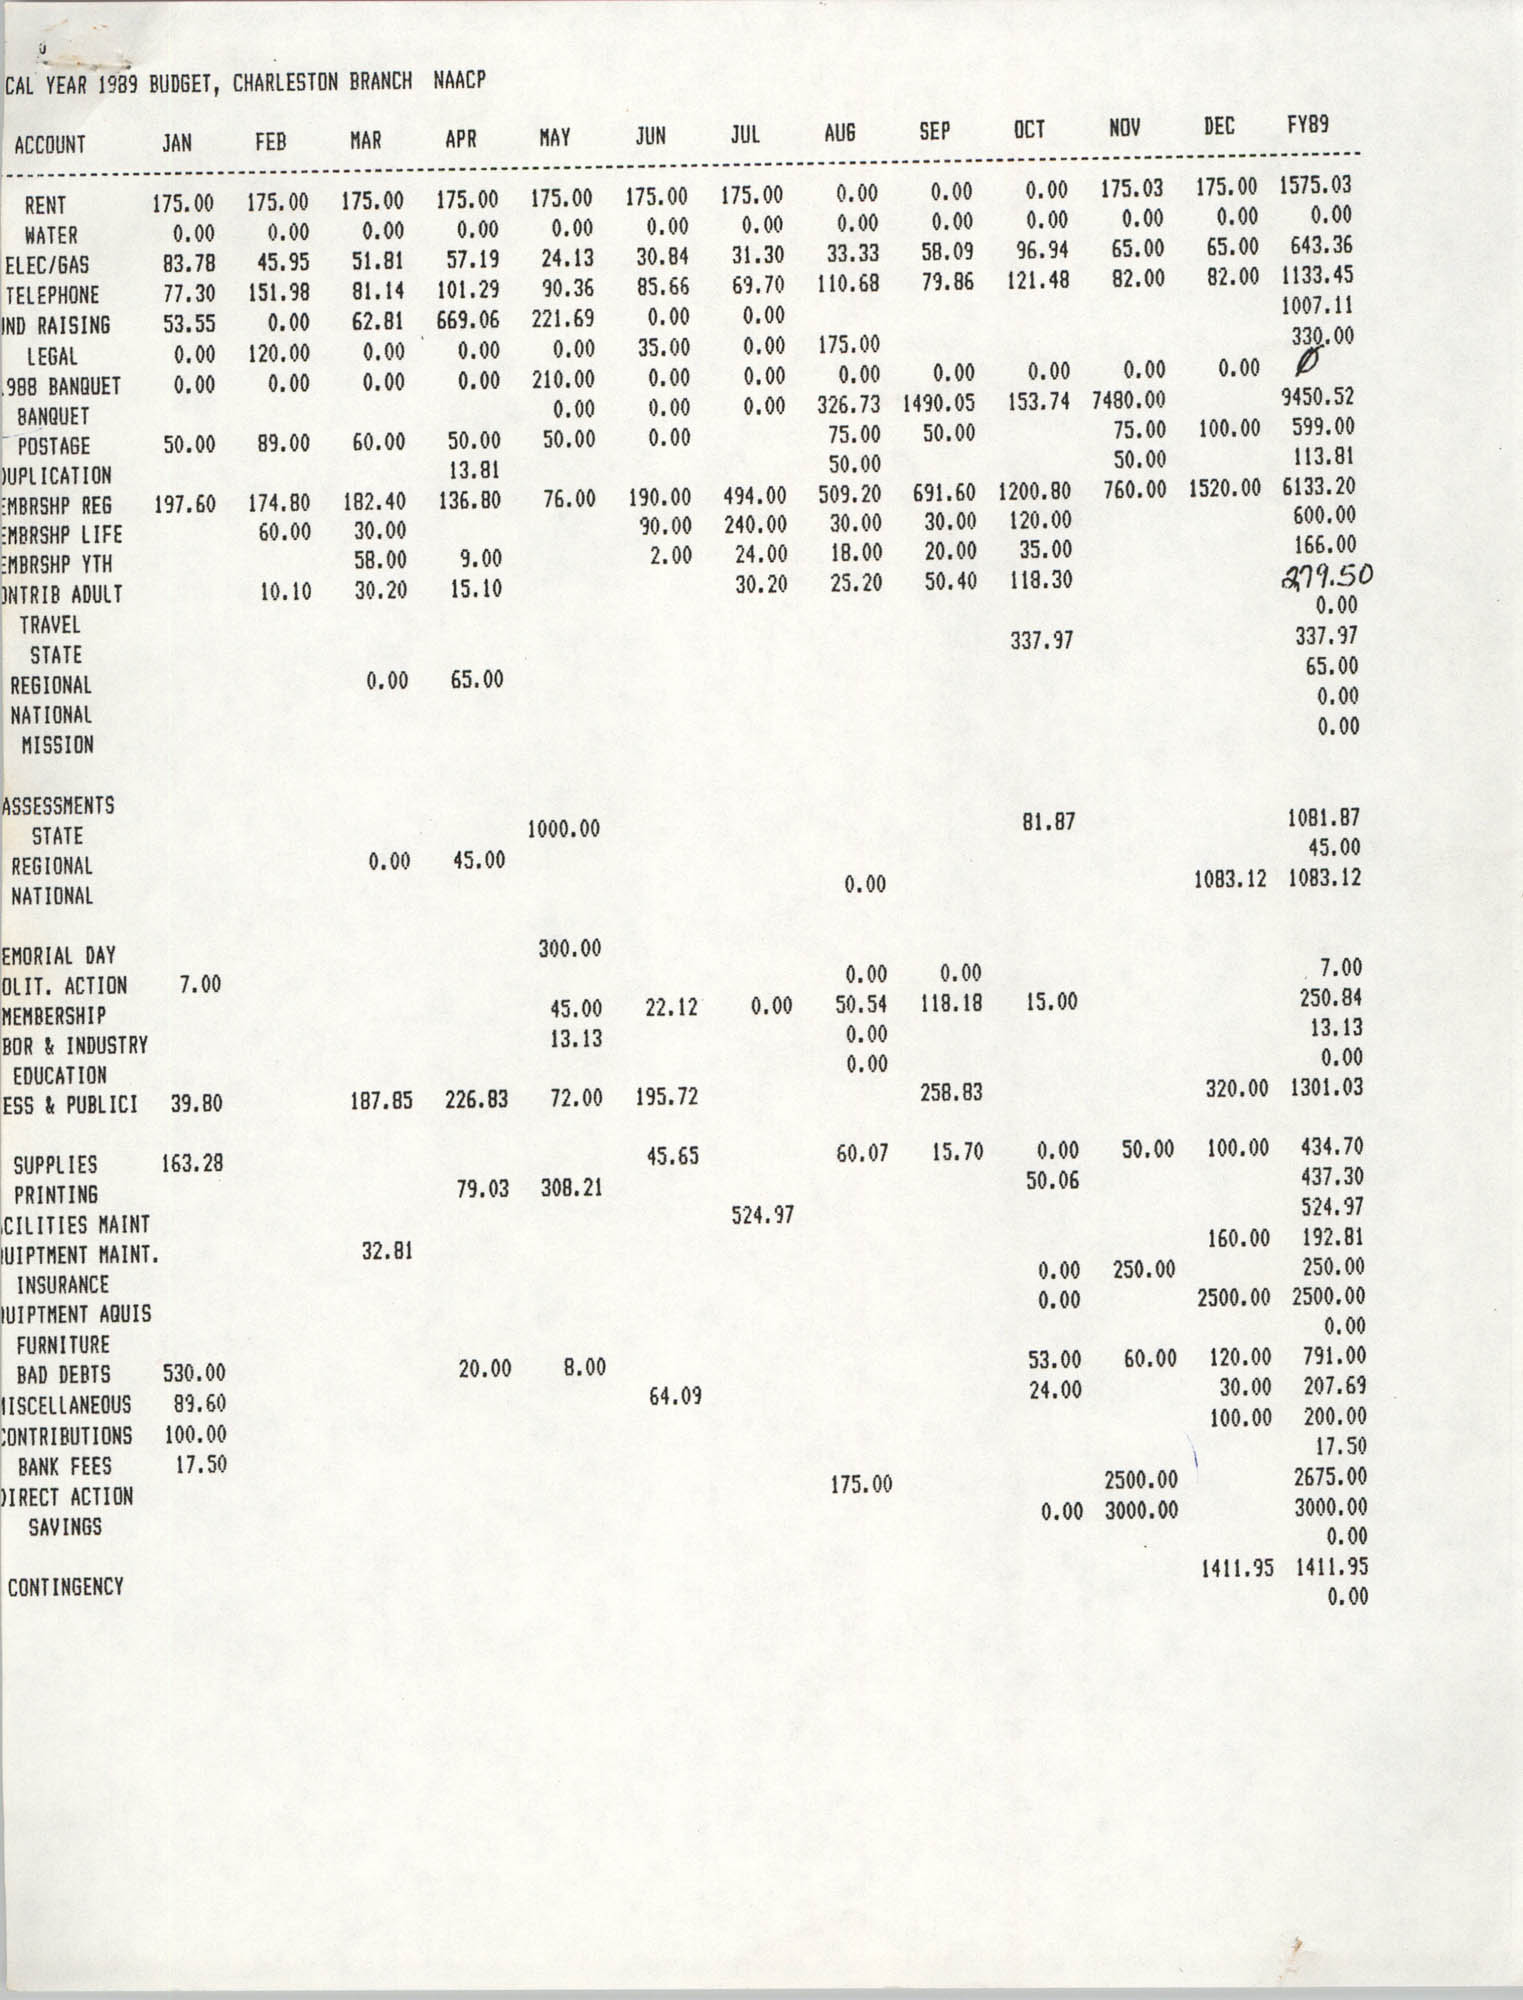 Charleston Branch of the NAACP Budget, 1989